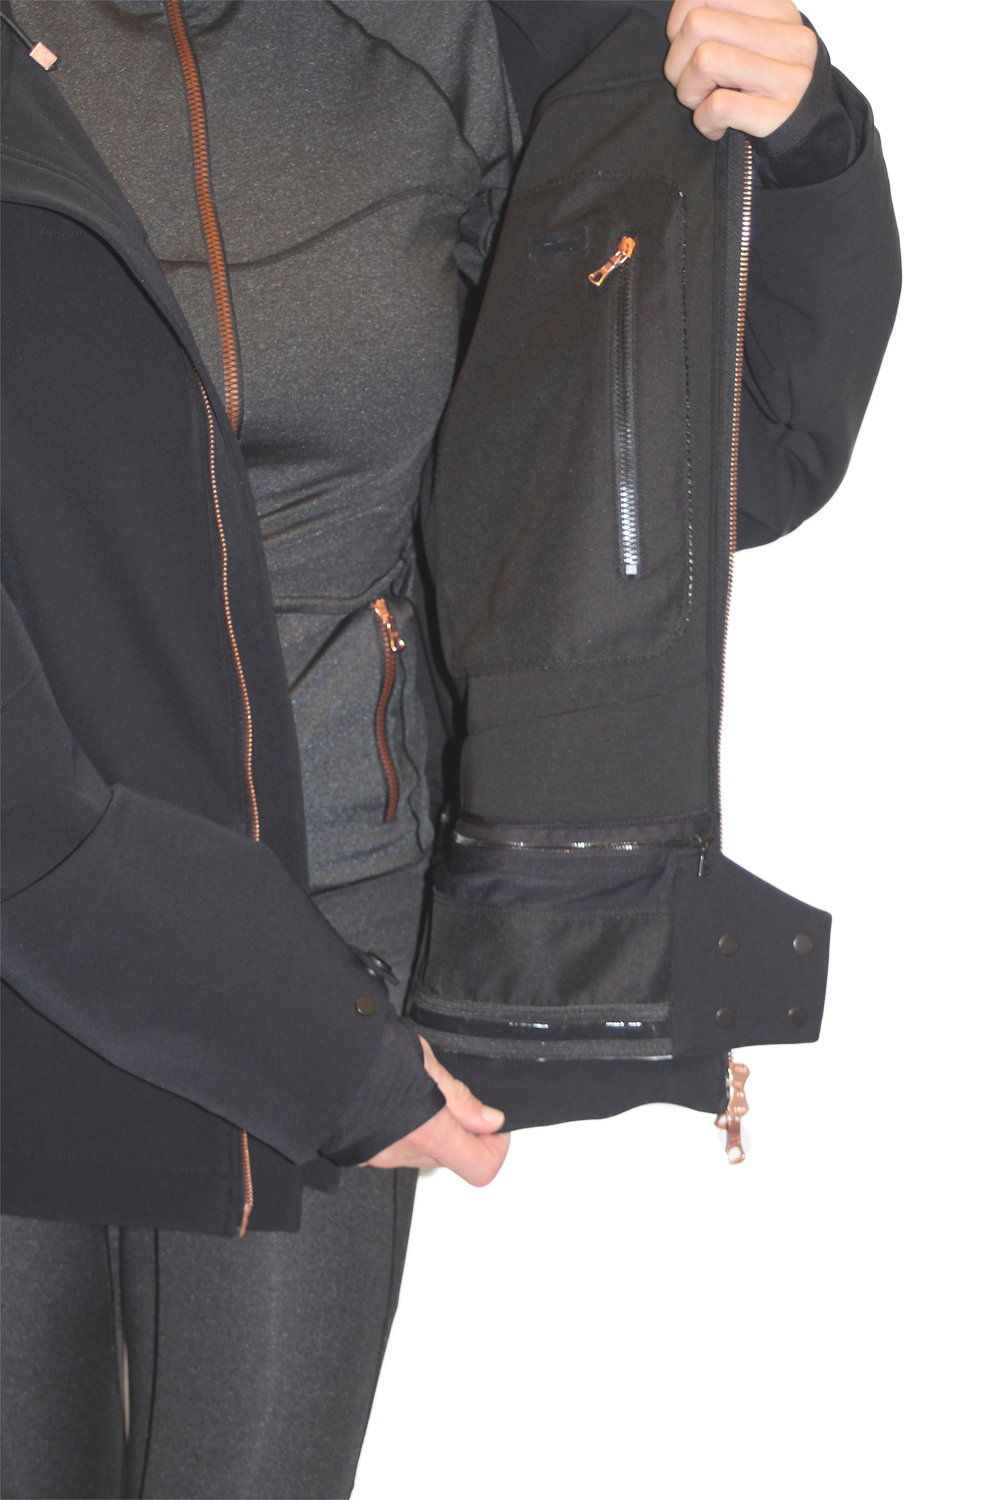 Interior view with chest pocket and removable storm gater on waist